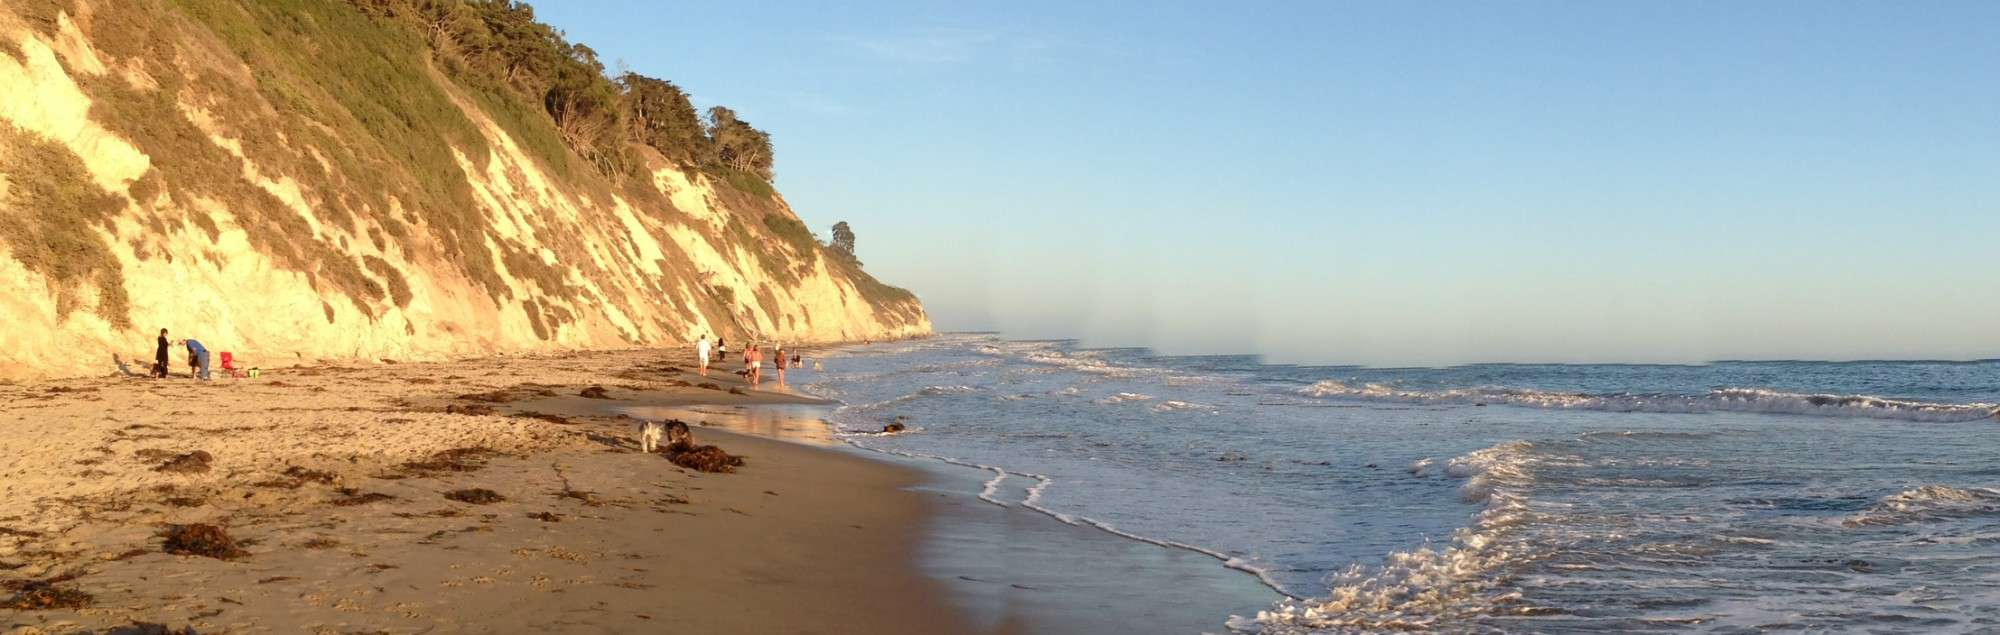 Arroyo Burro Beach, Best Central California beaches, Santa Barbara County beaches